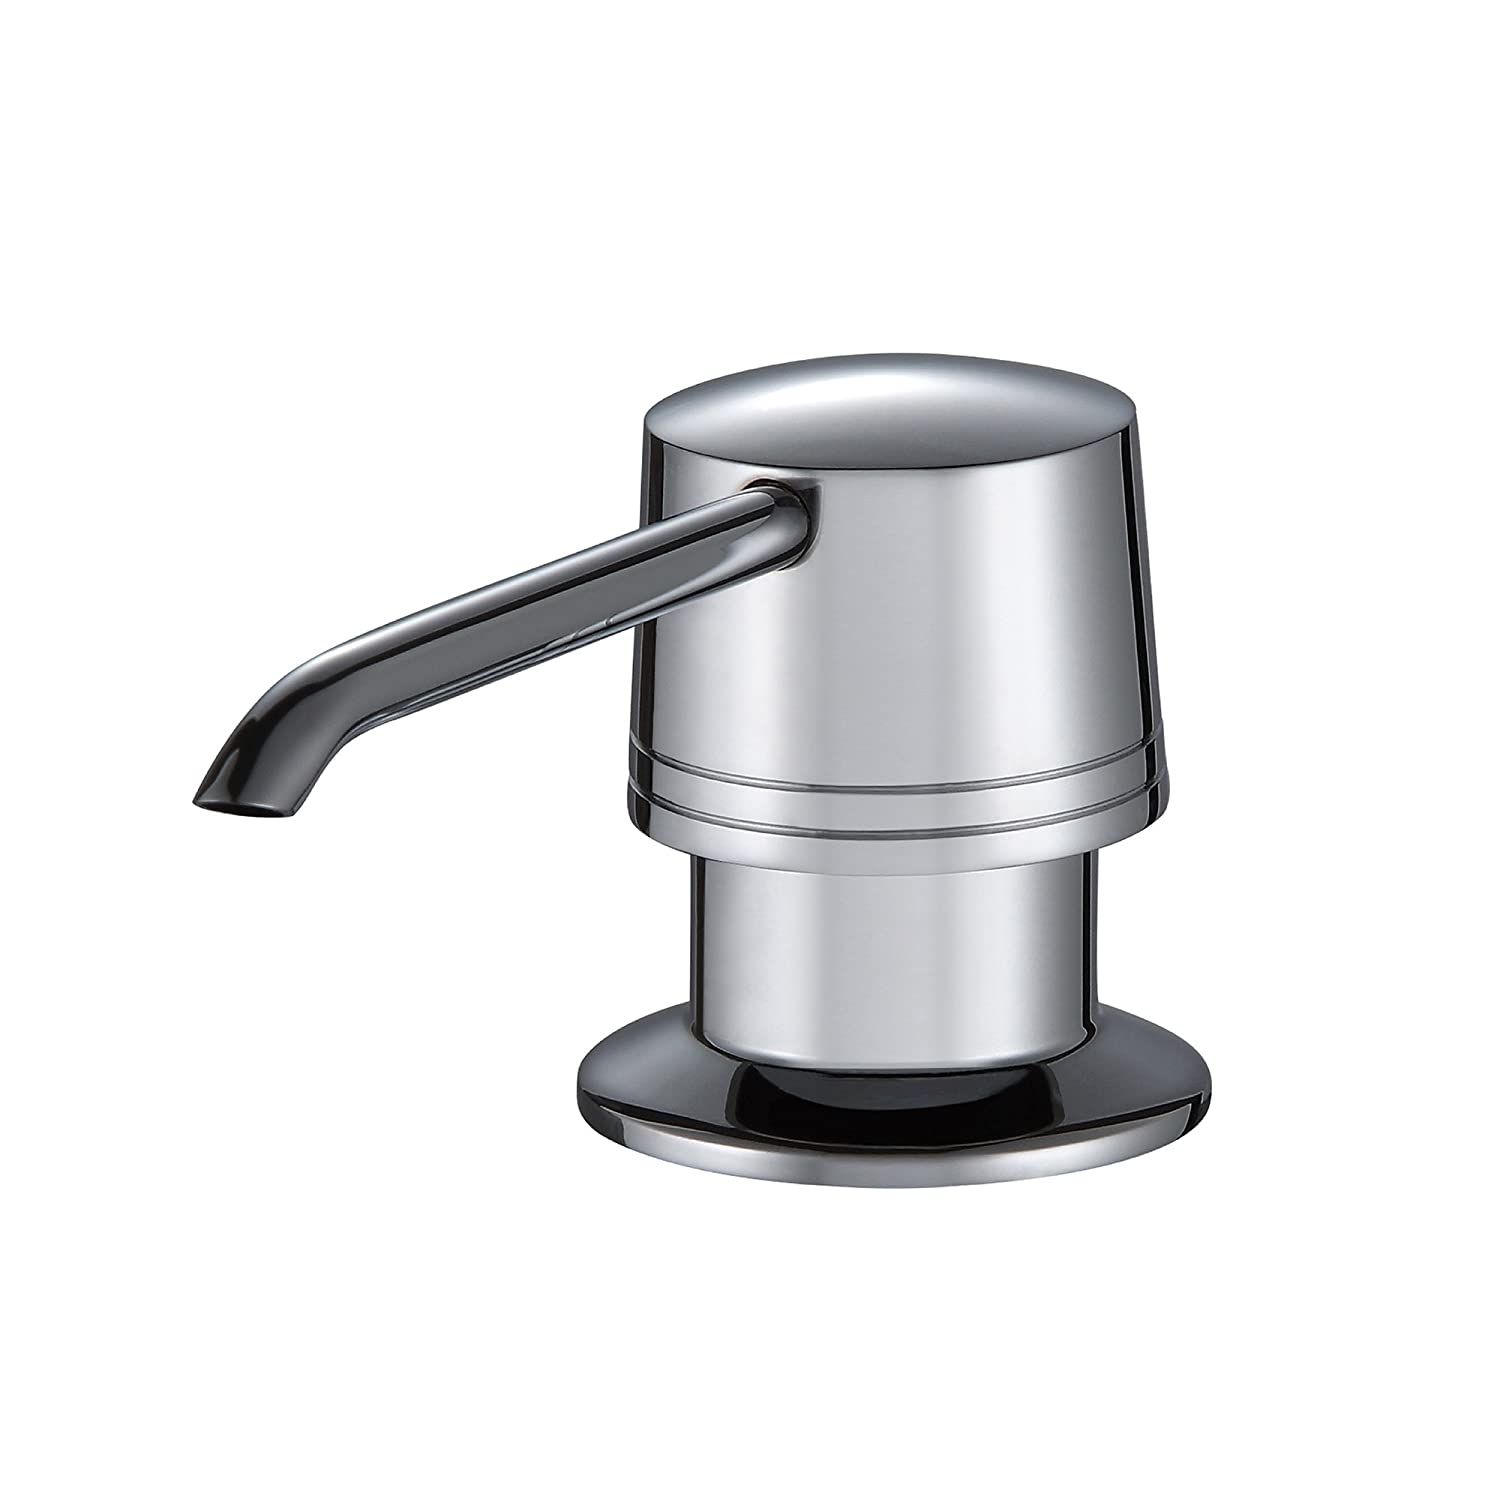 Kraus KHU100-30-KPF1612-KSD30CH 30 inch Undermount Single Bowl Stainless Steel Kitchen Sink with Chrome Kitchen Faucet and Soap Dispenser